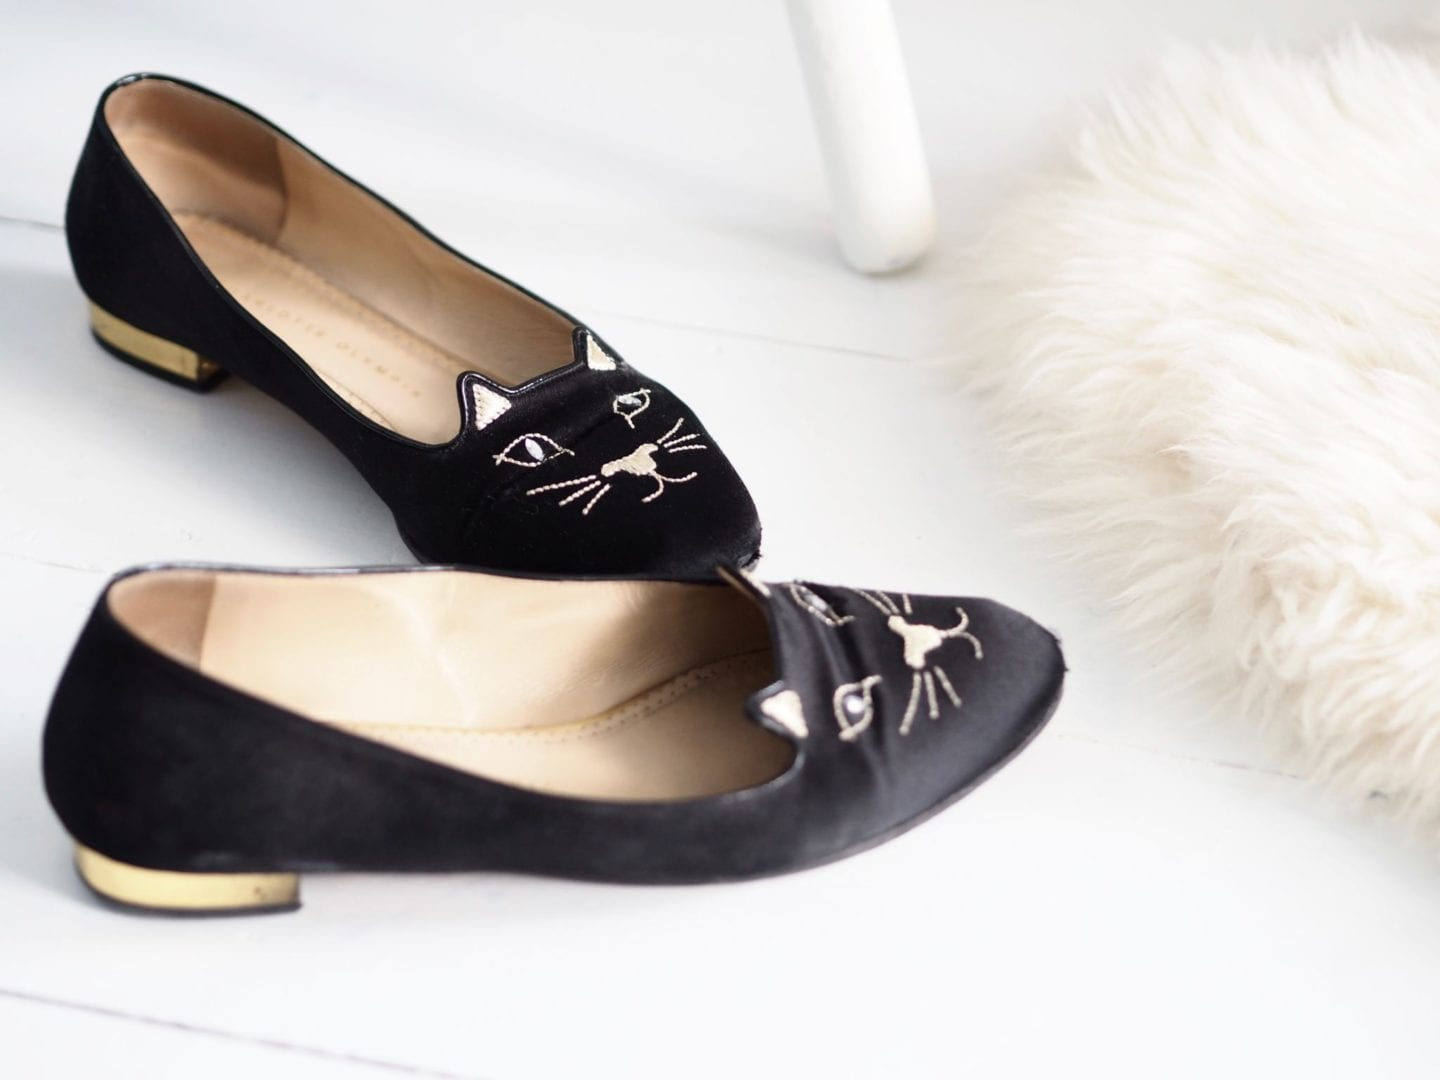 kitty-shoes-charlotte-olympia